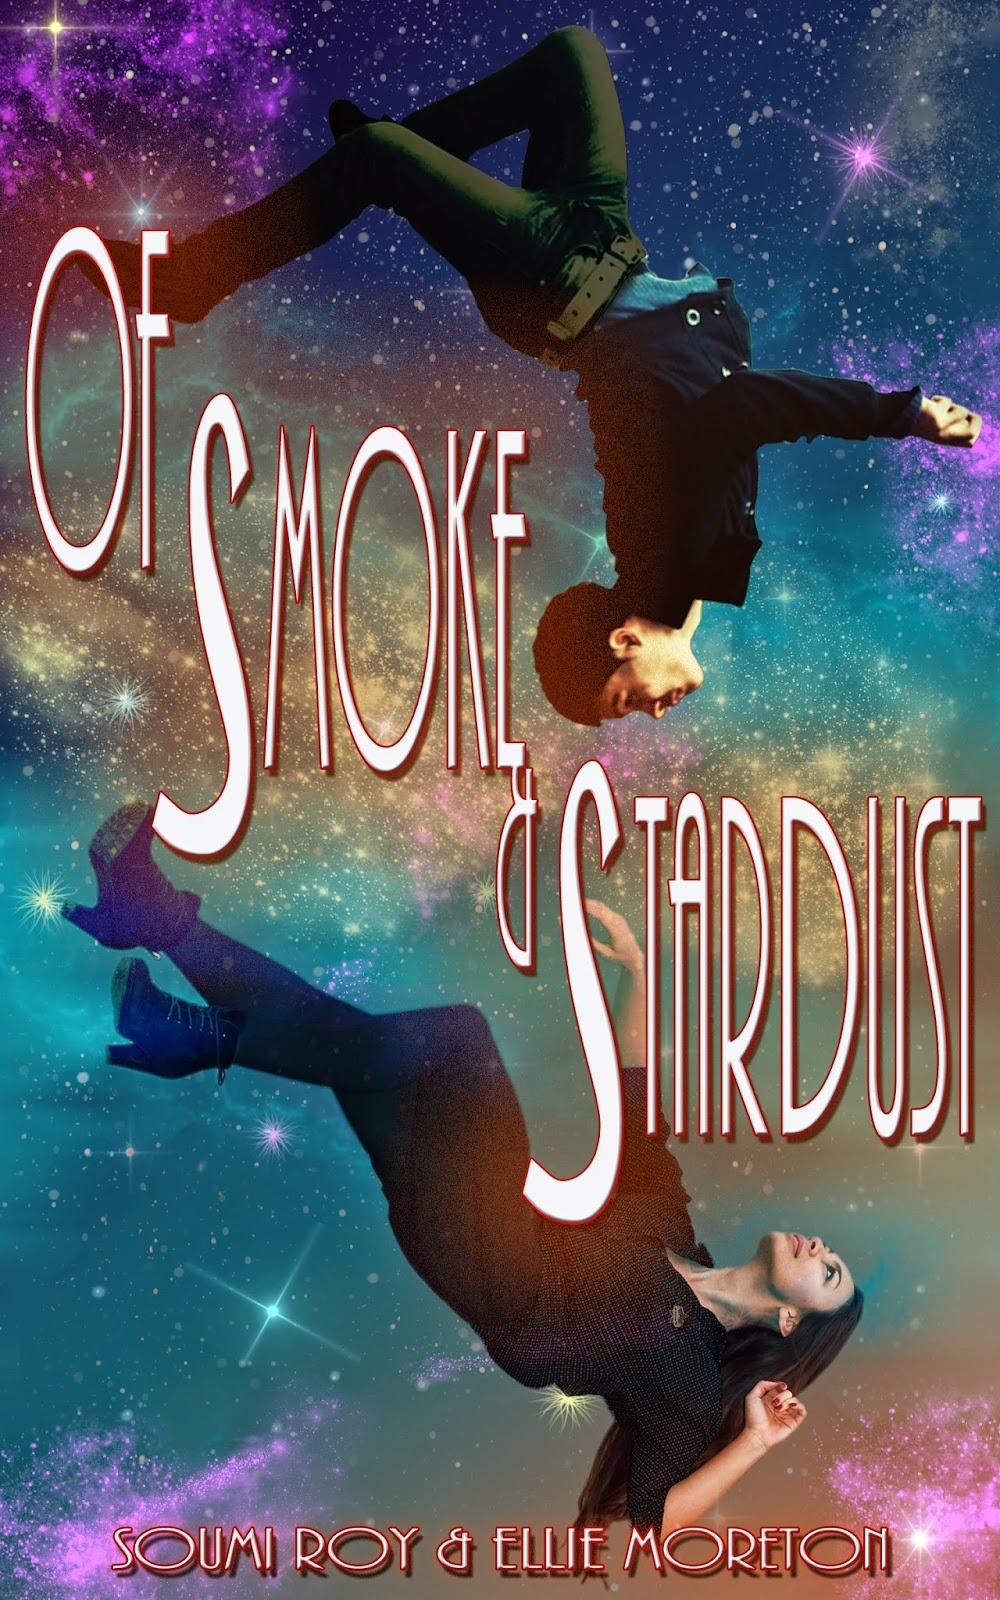 http://www.wattpad.com/myworks/31290385-of-smoke-and-stardust